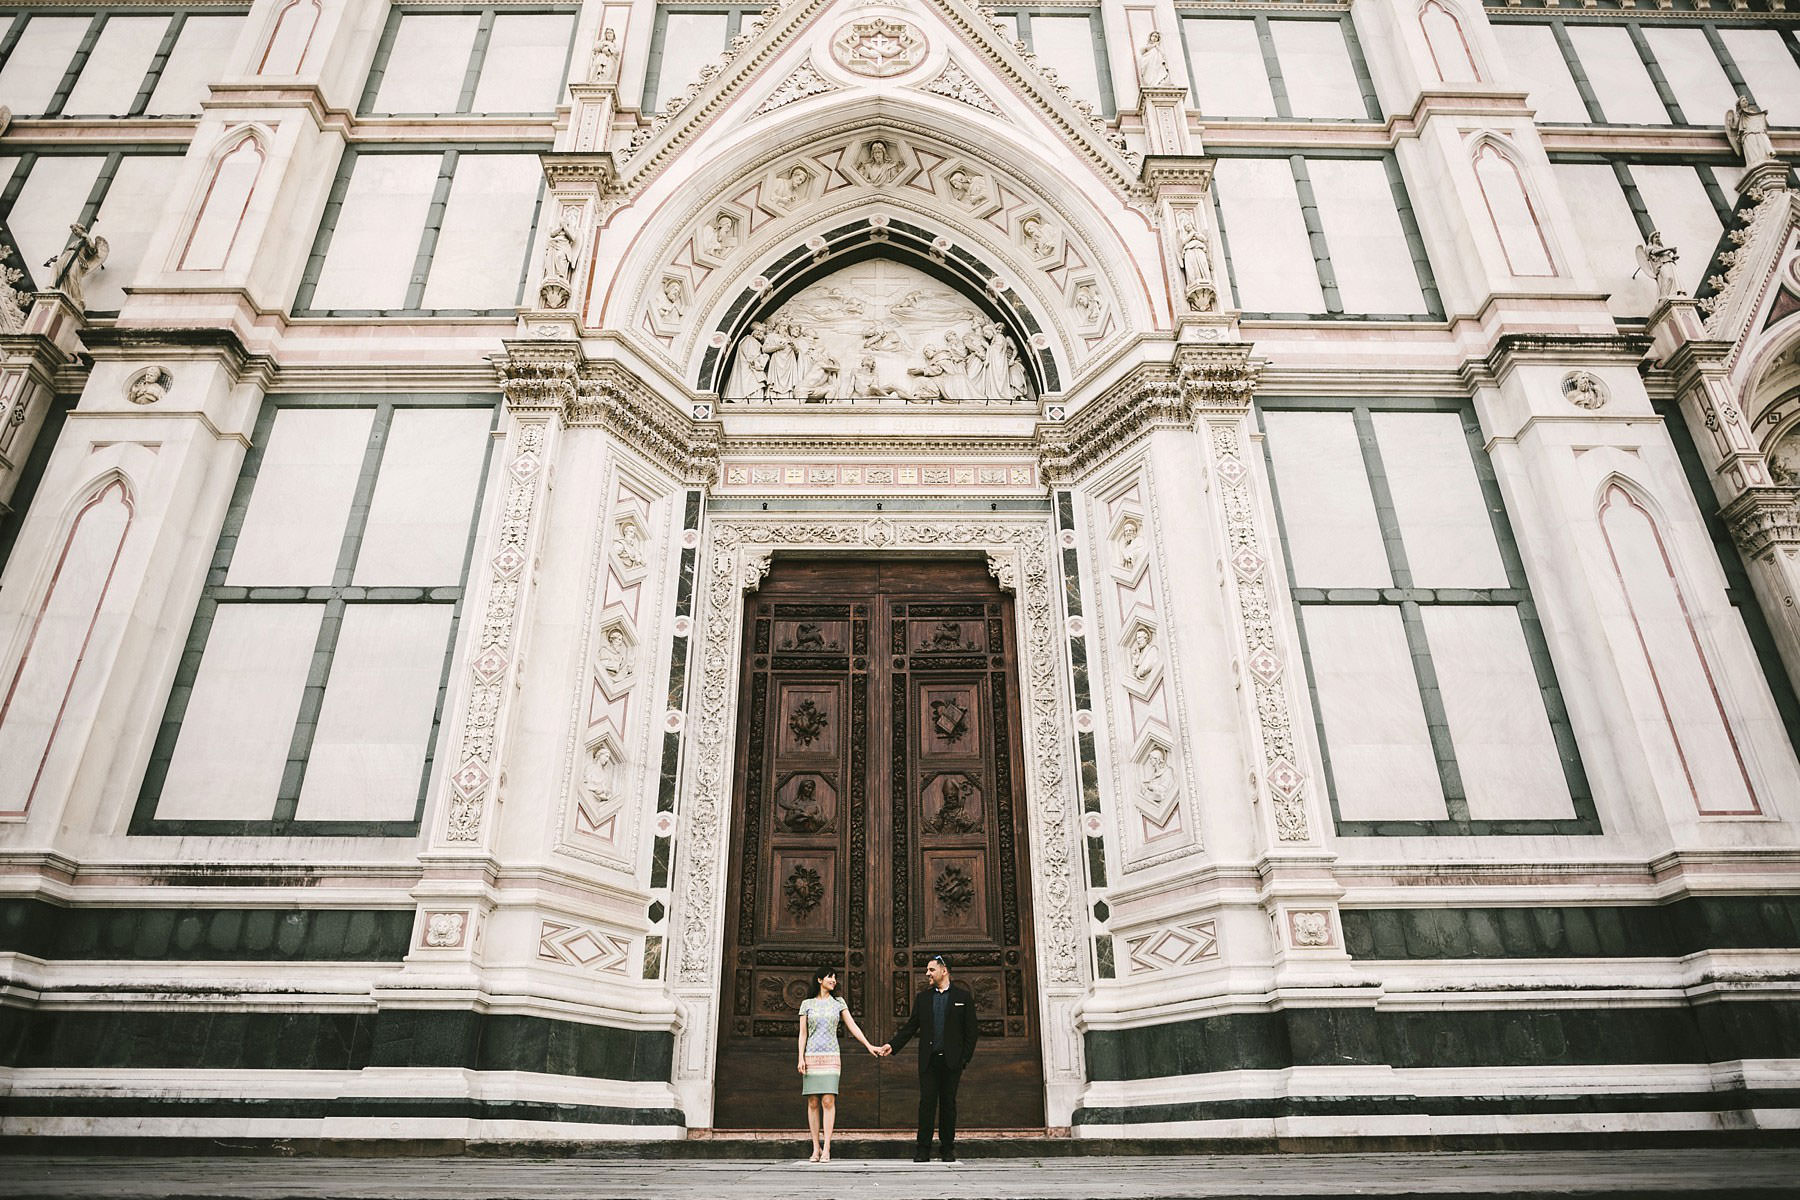 Florence at sunrise time, the best time to take advantage of the beautiful city without the distraction of the tourists